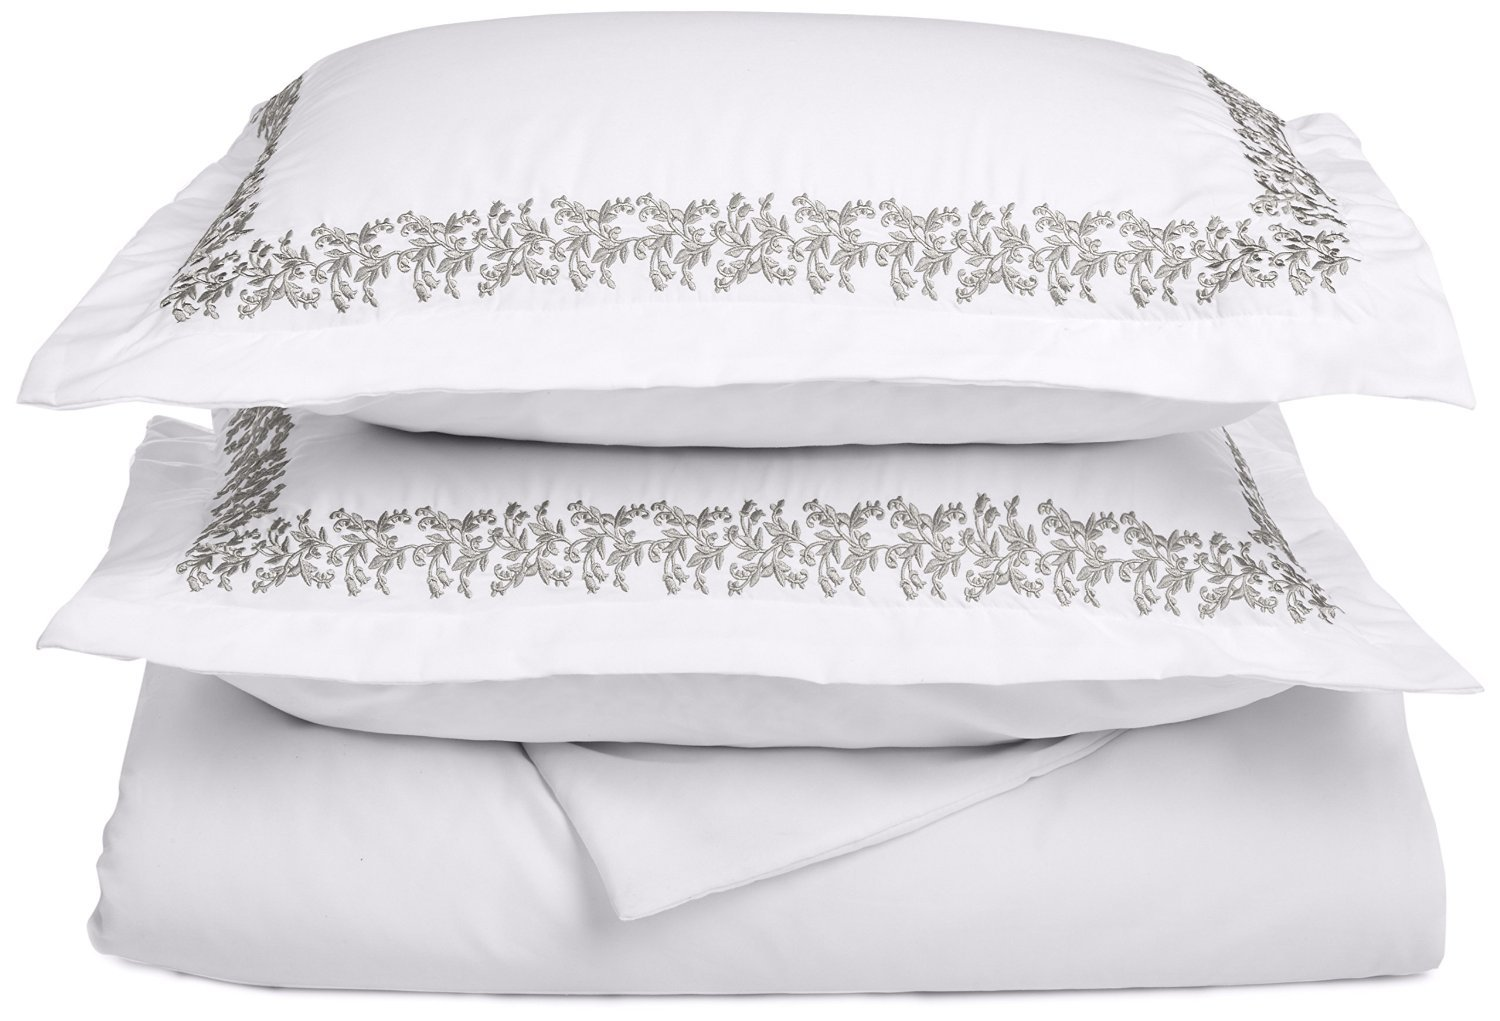 Super Soft Light Weight, 100% Brushed Microfiber, Wrinkle Resistant, Twin/Twin XL Duvet Cover, White with Grey Floral Lace Embroidery Pillowshams in Gift Box